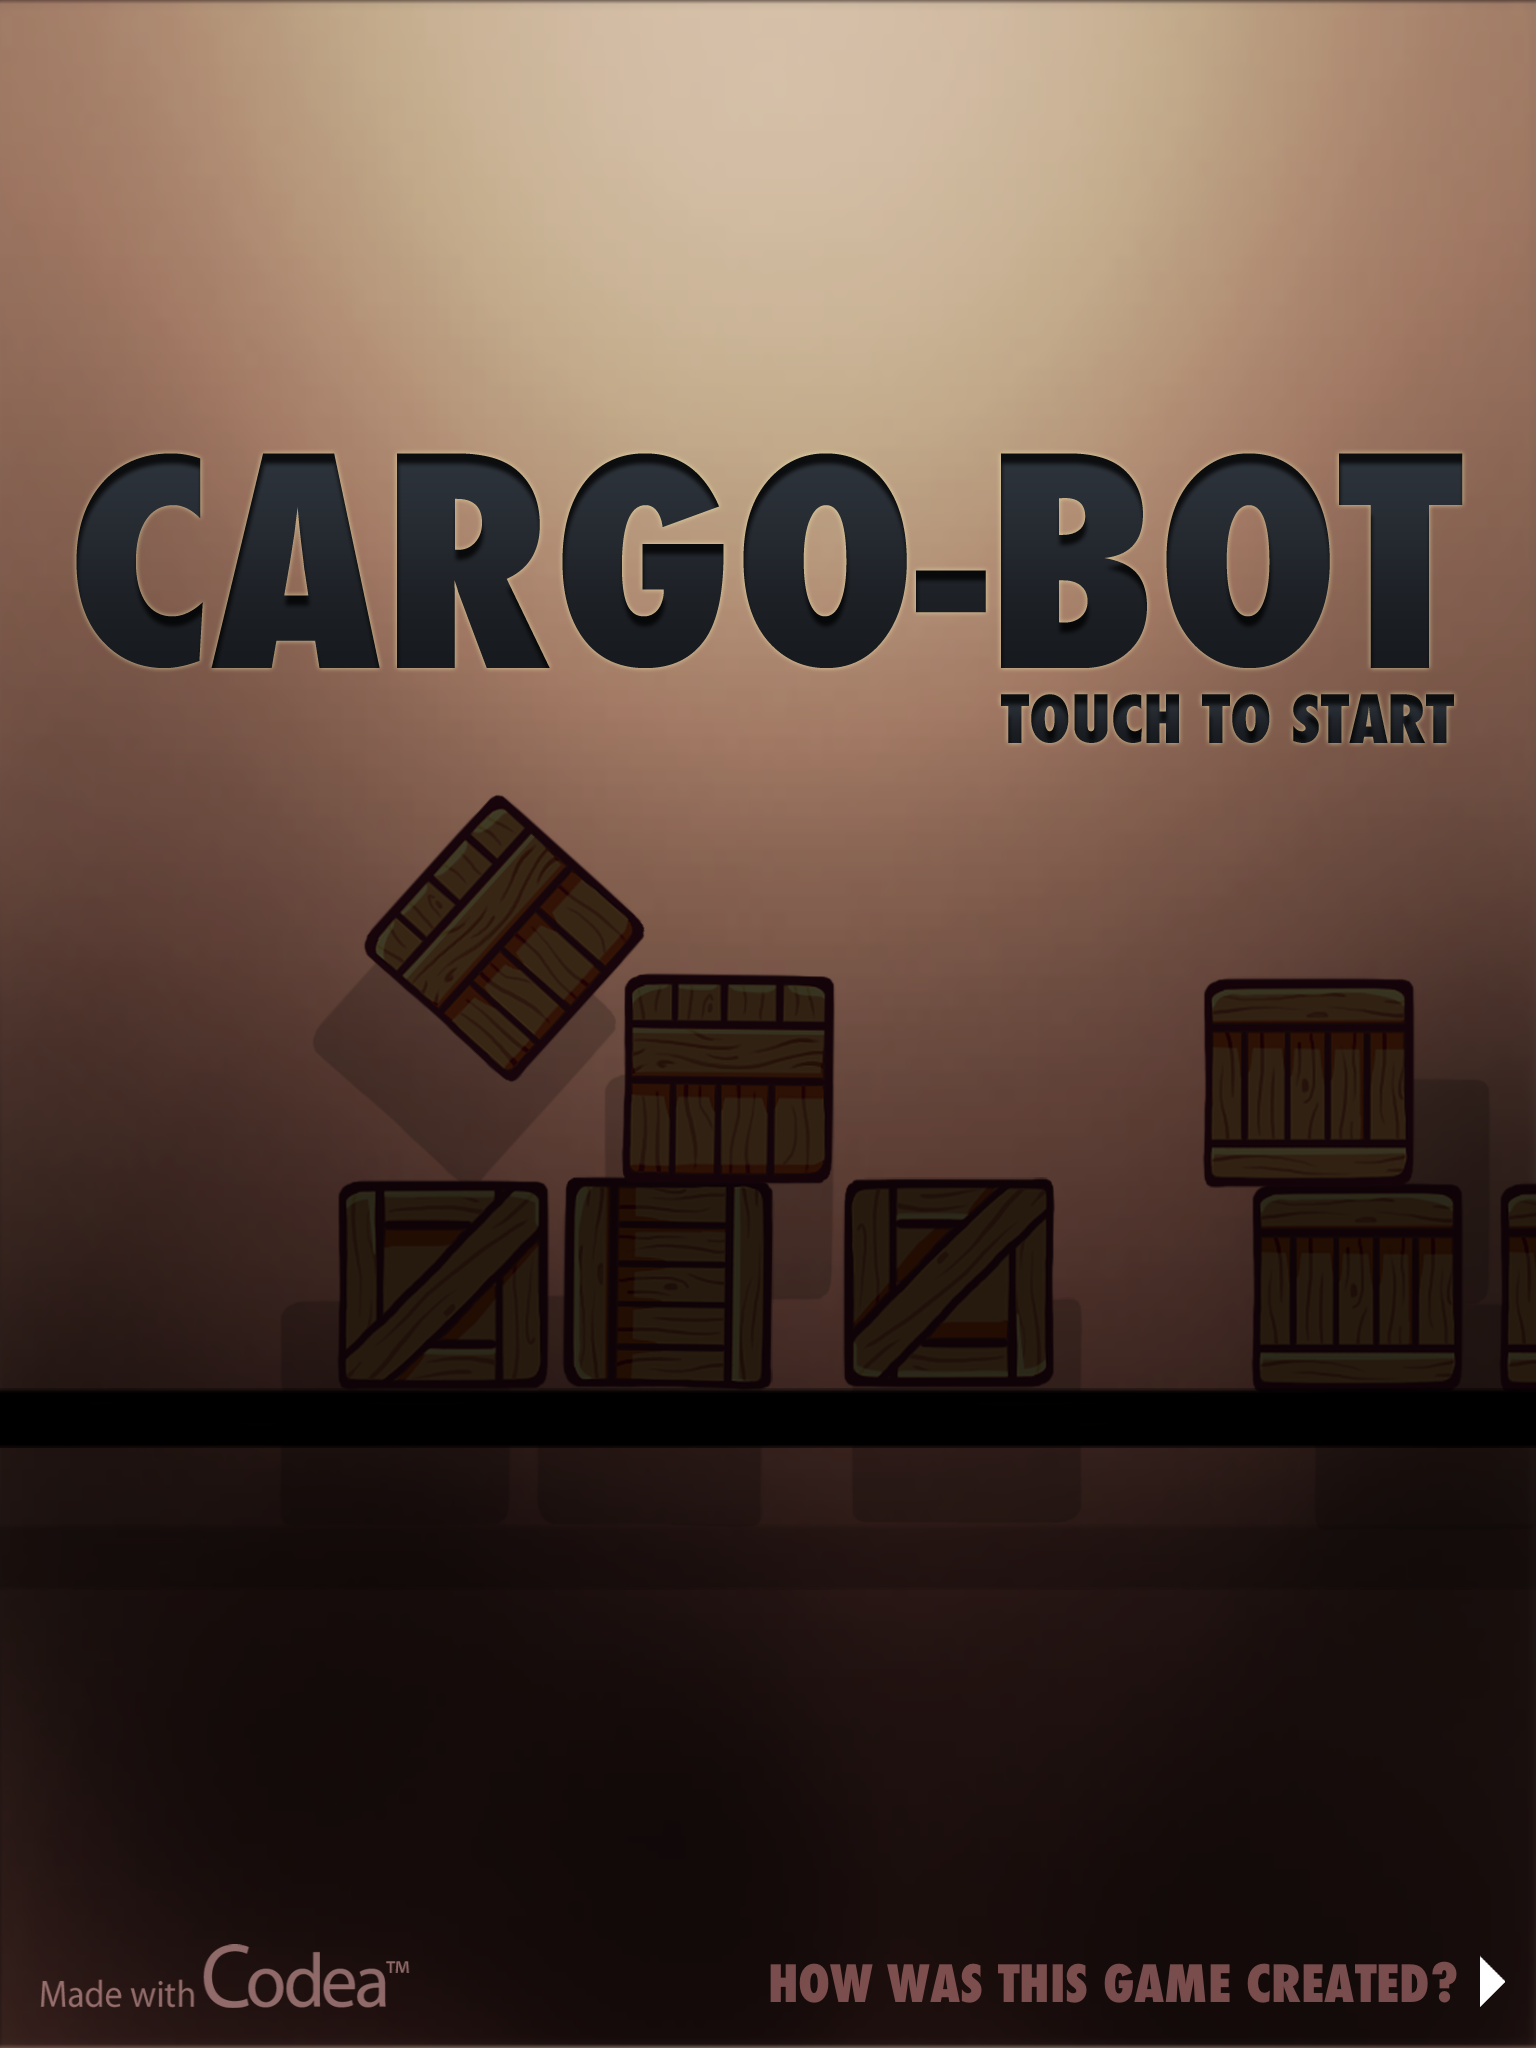 EdTech Tutorial: How To Use The App 'Cargobot' To Teach Programming